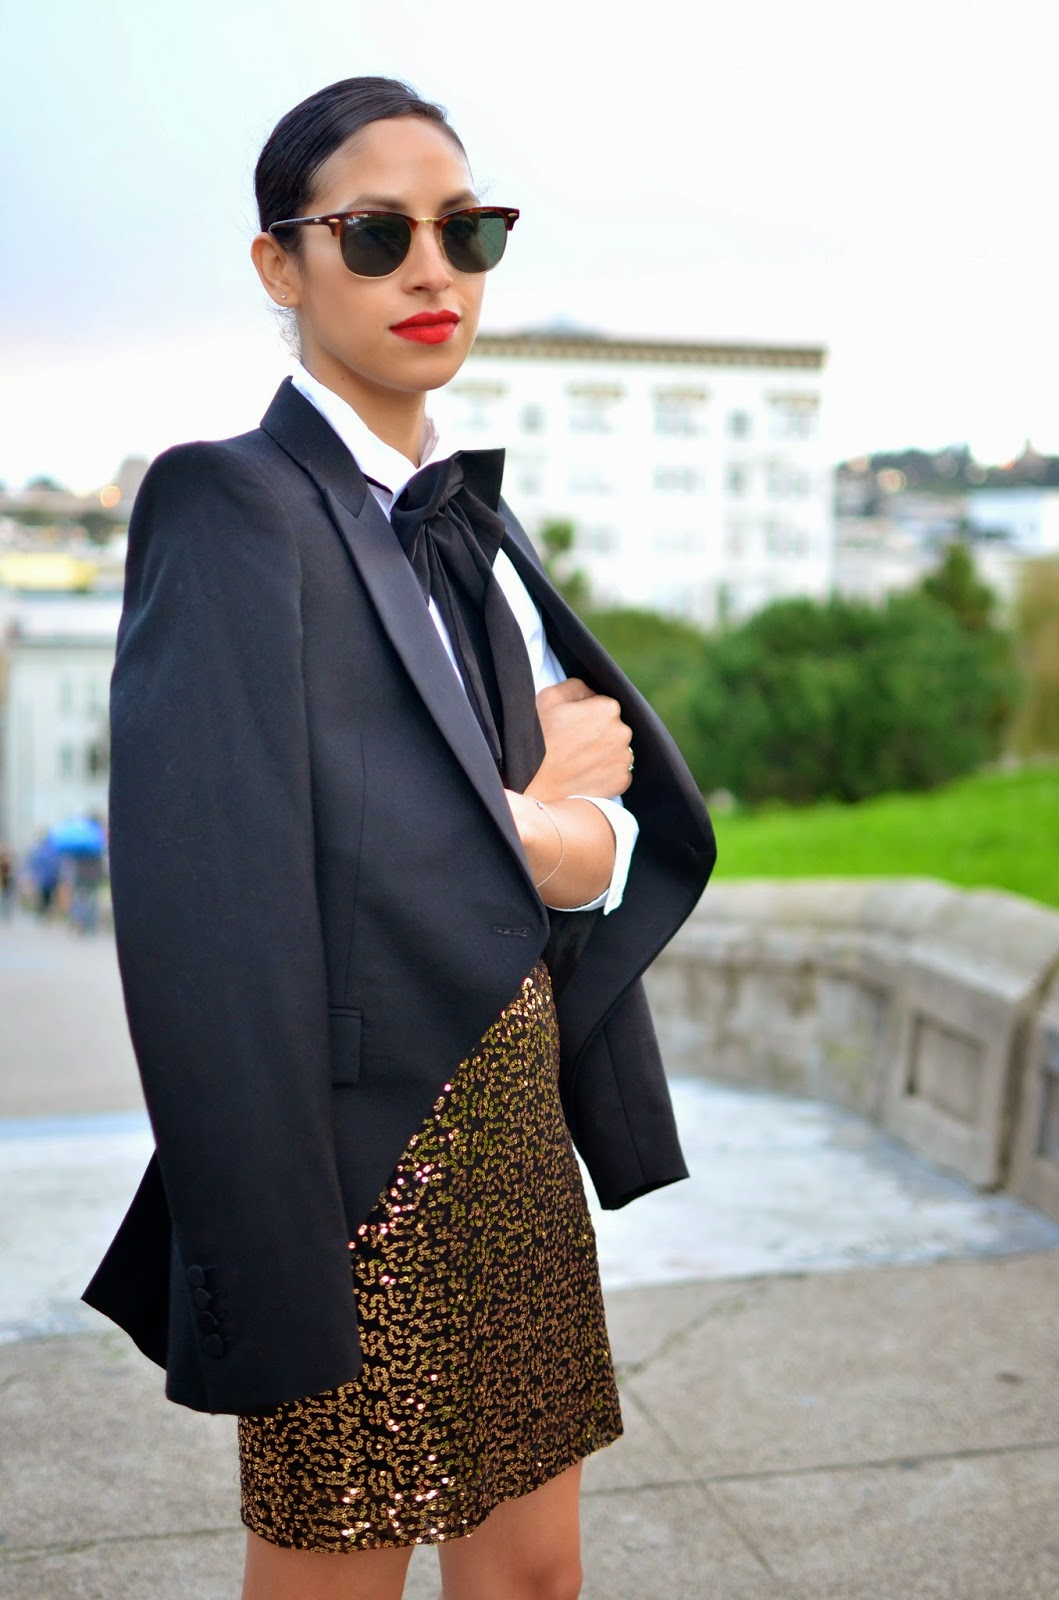 NYE look, NYE style, tux blazer, lady bowtie, style in the city